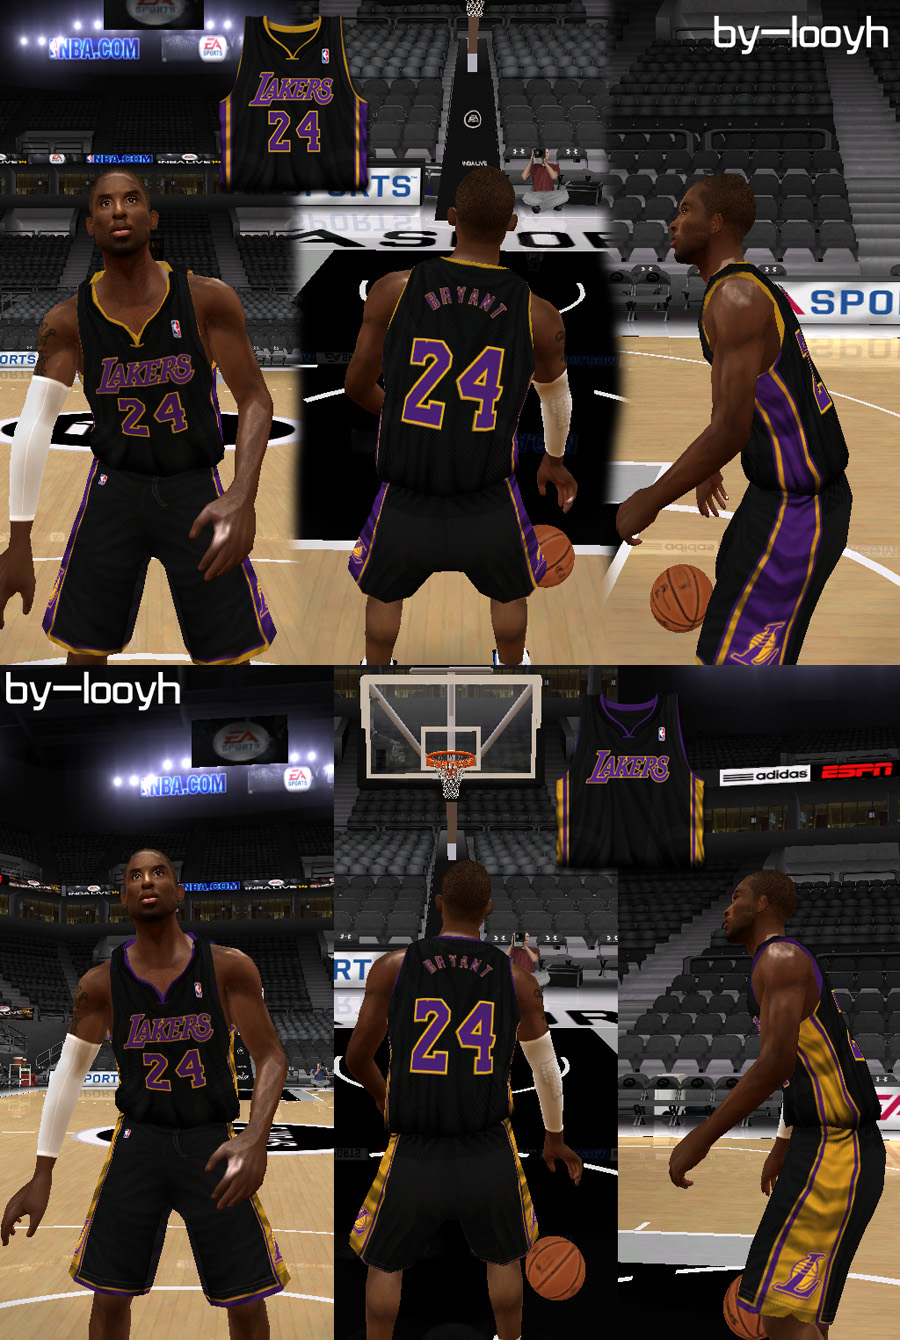 Los Angeles Lakers Black Jerseys Patch